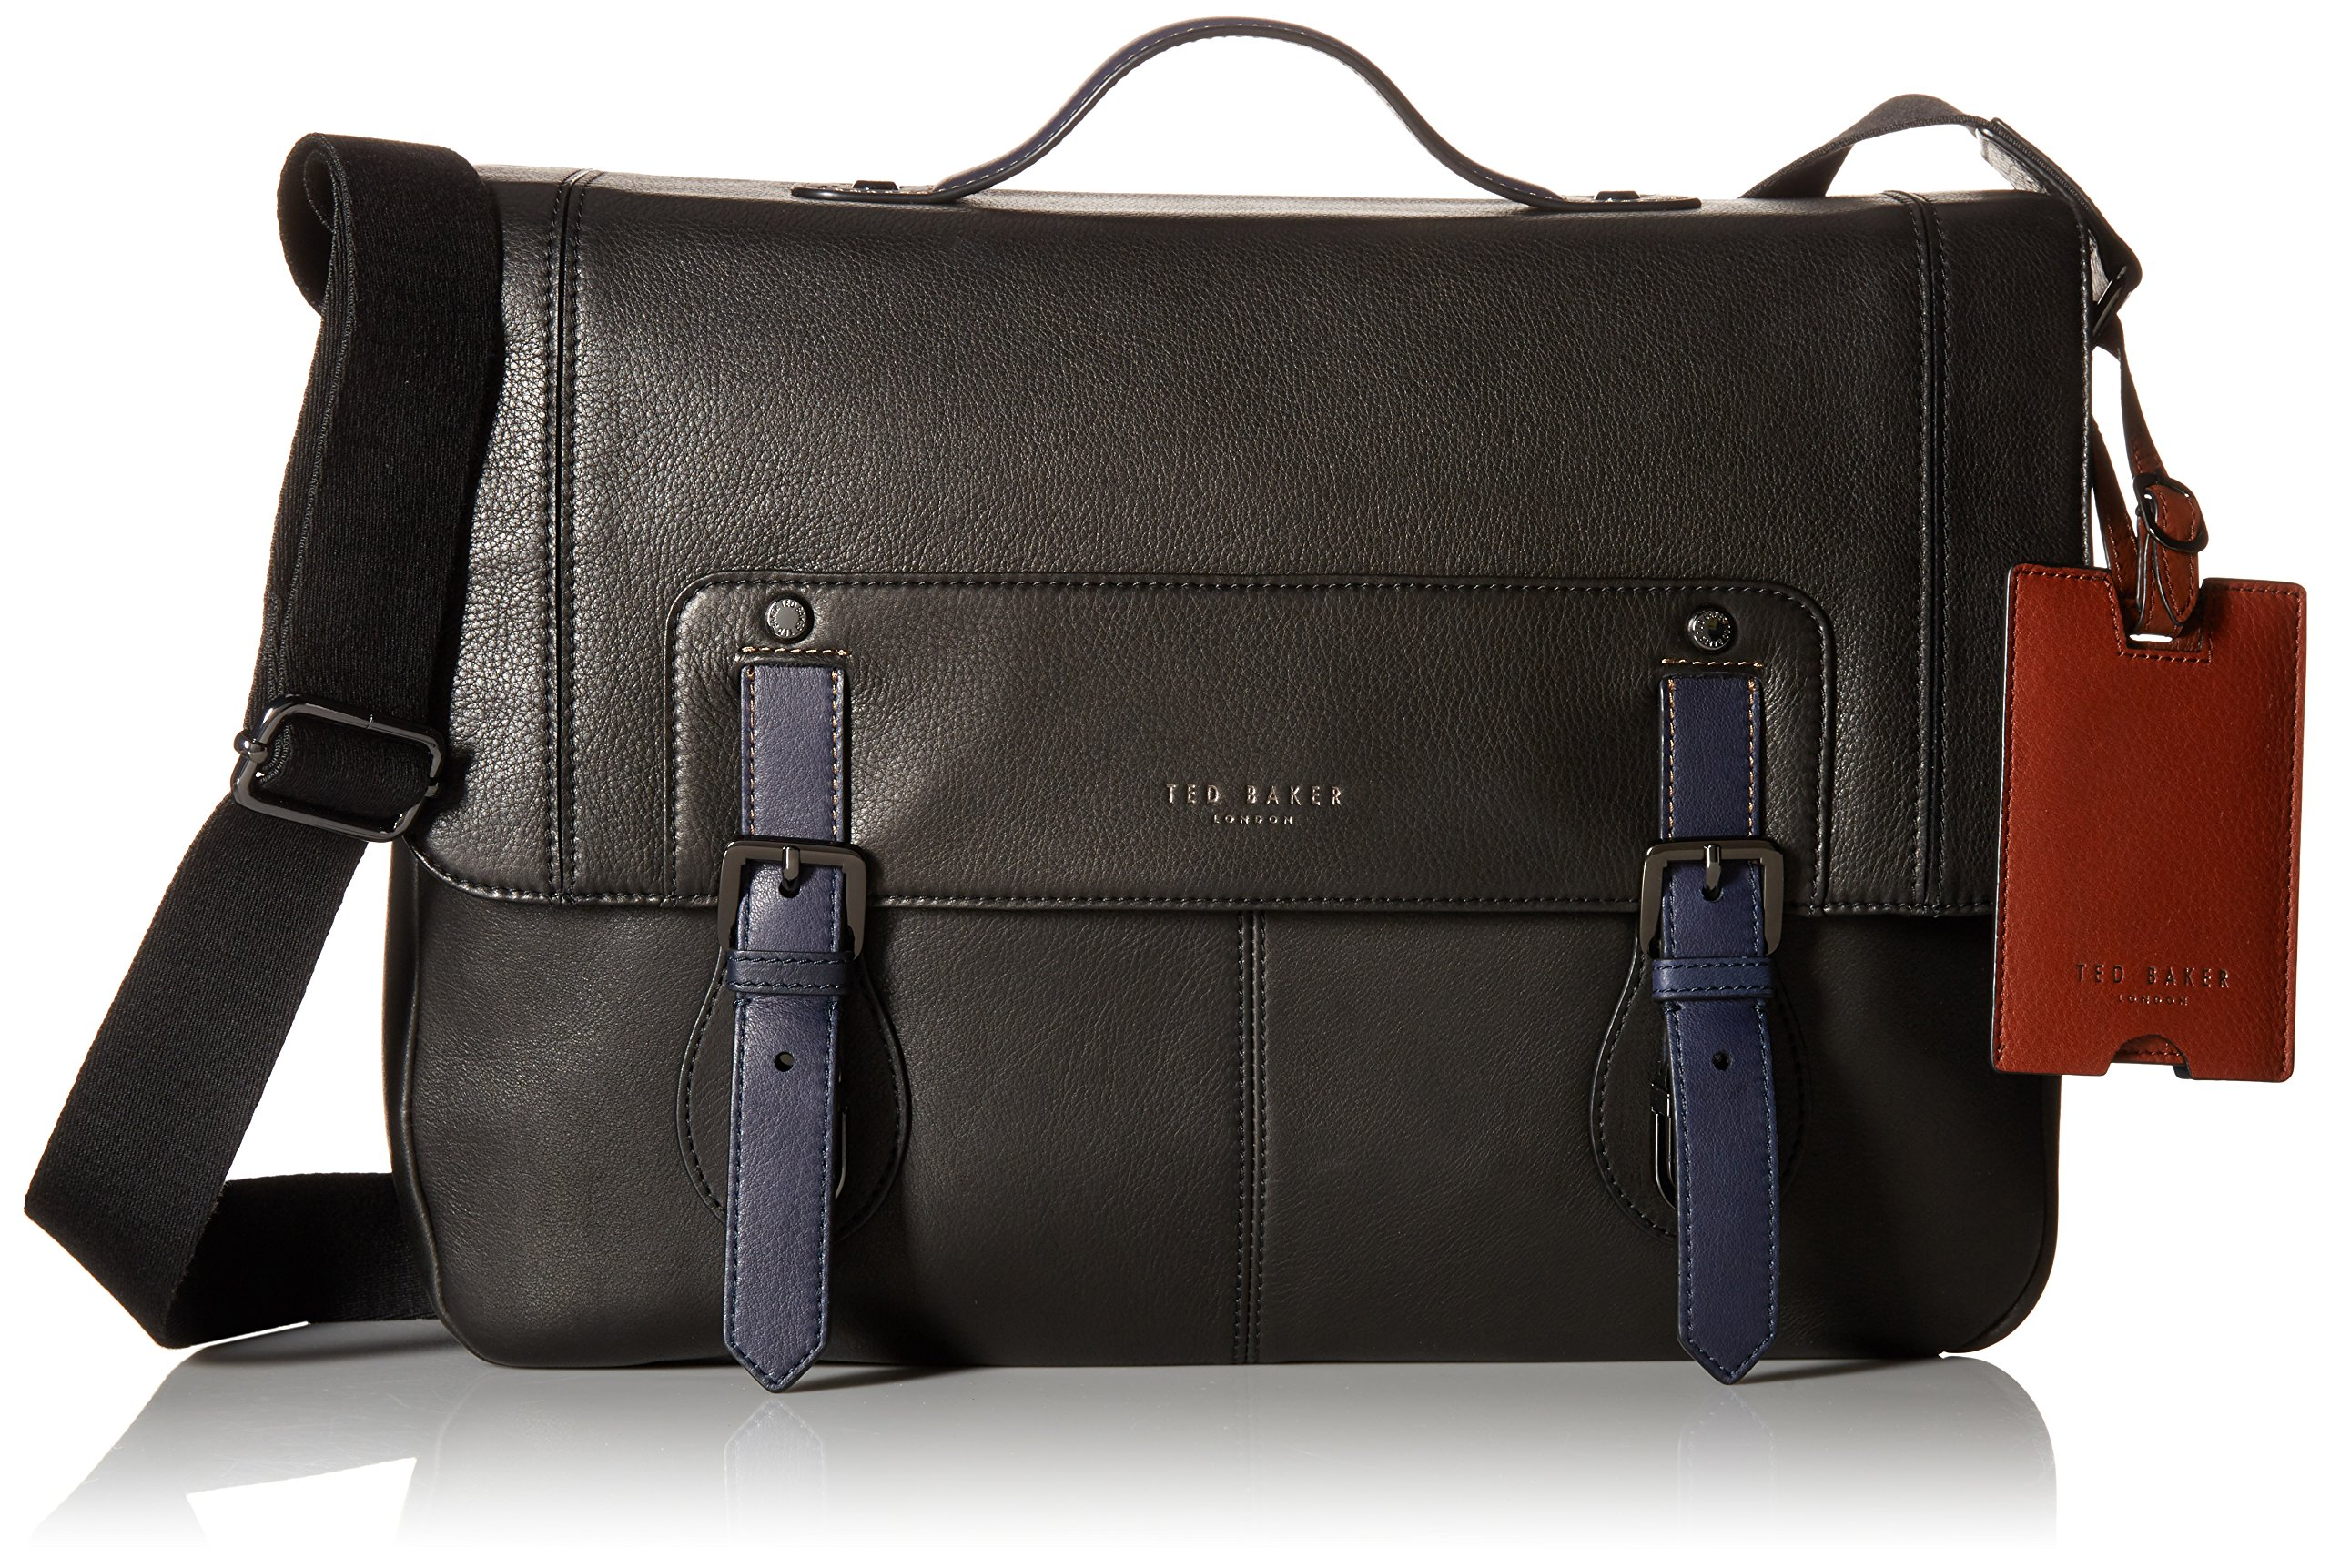 Ted Baker Colour Block Messenger Bag, Black